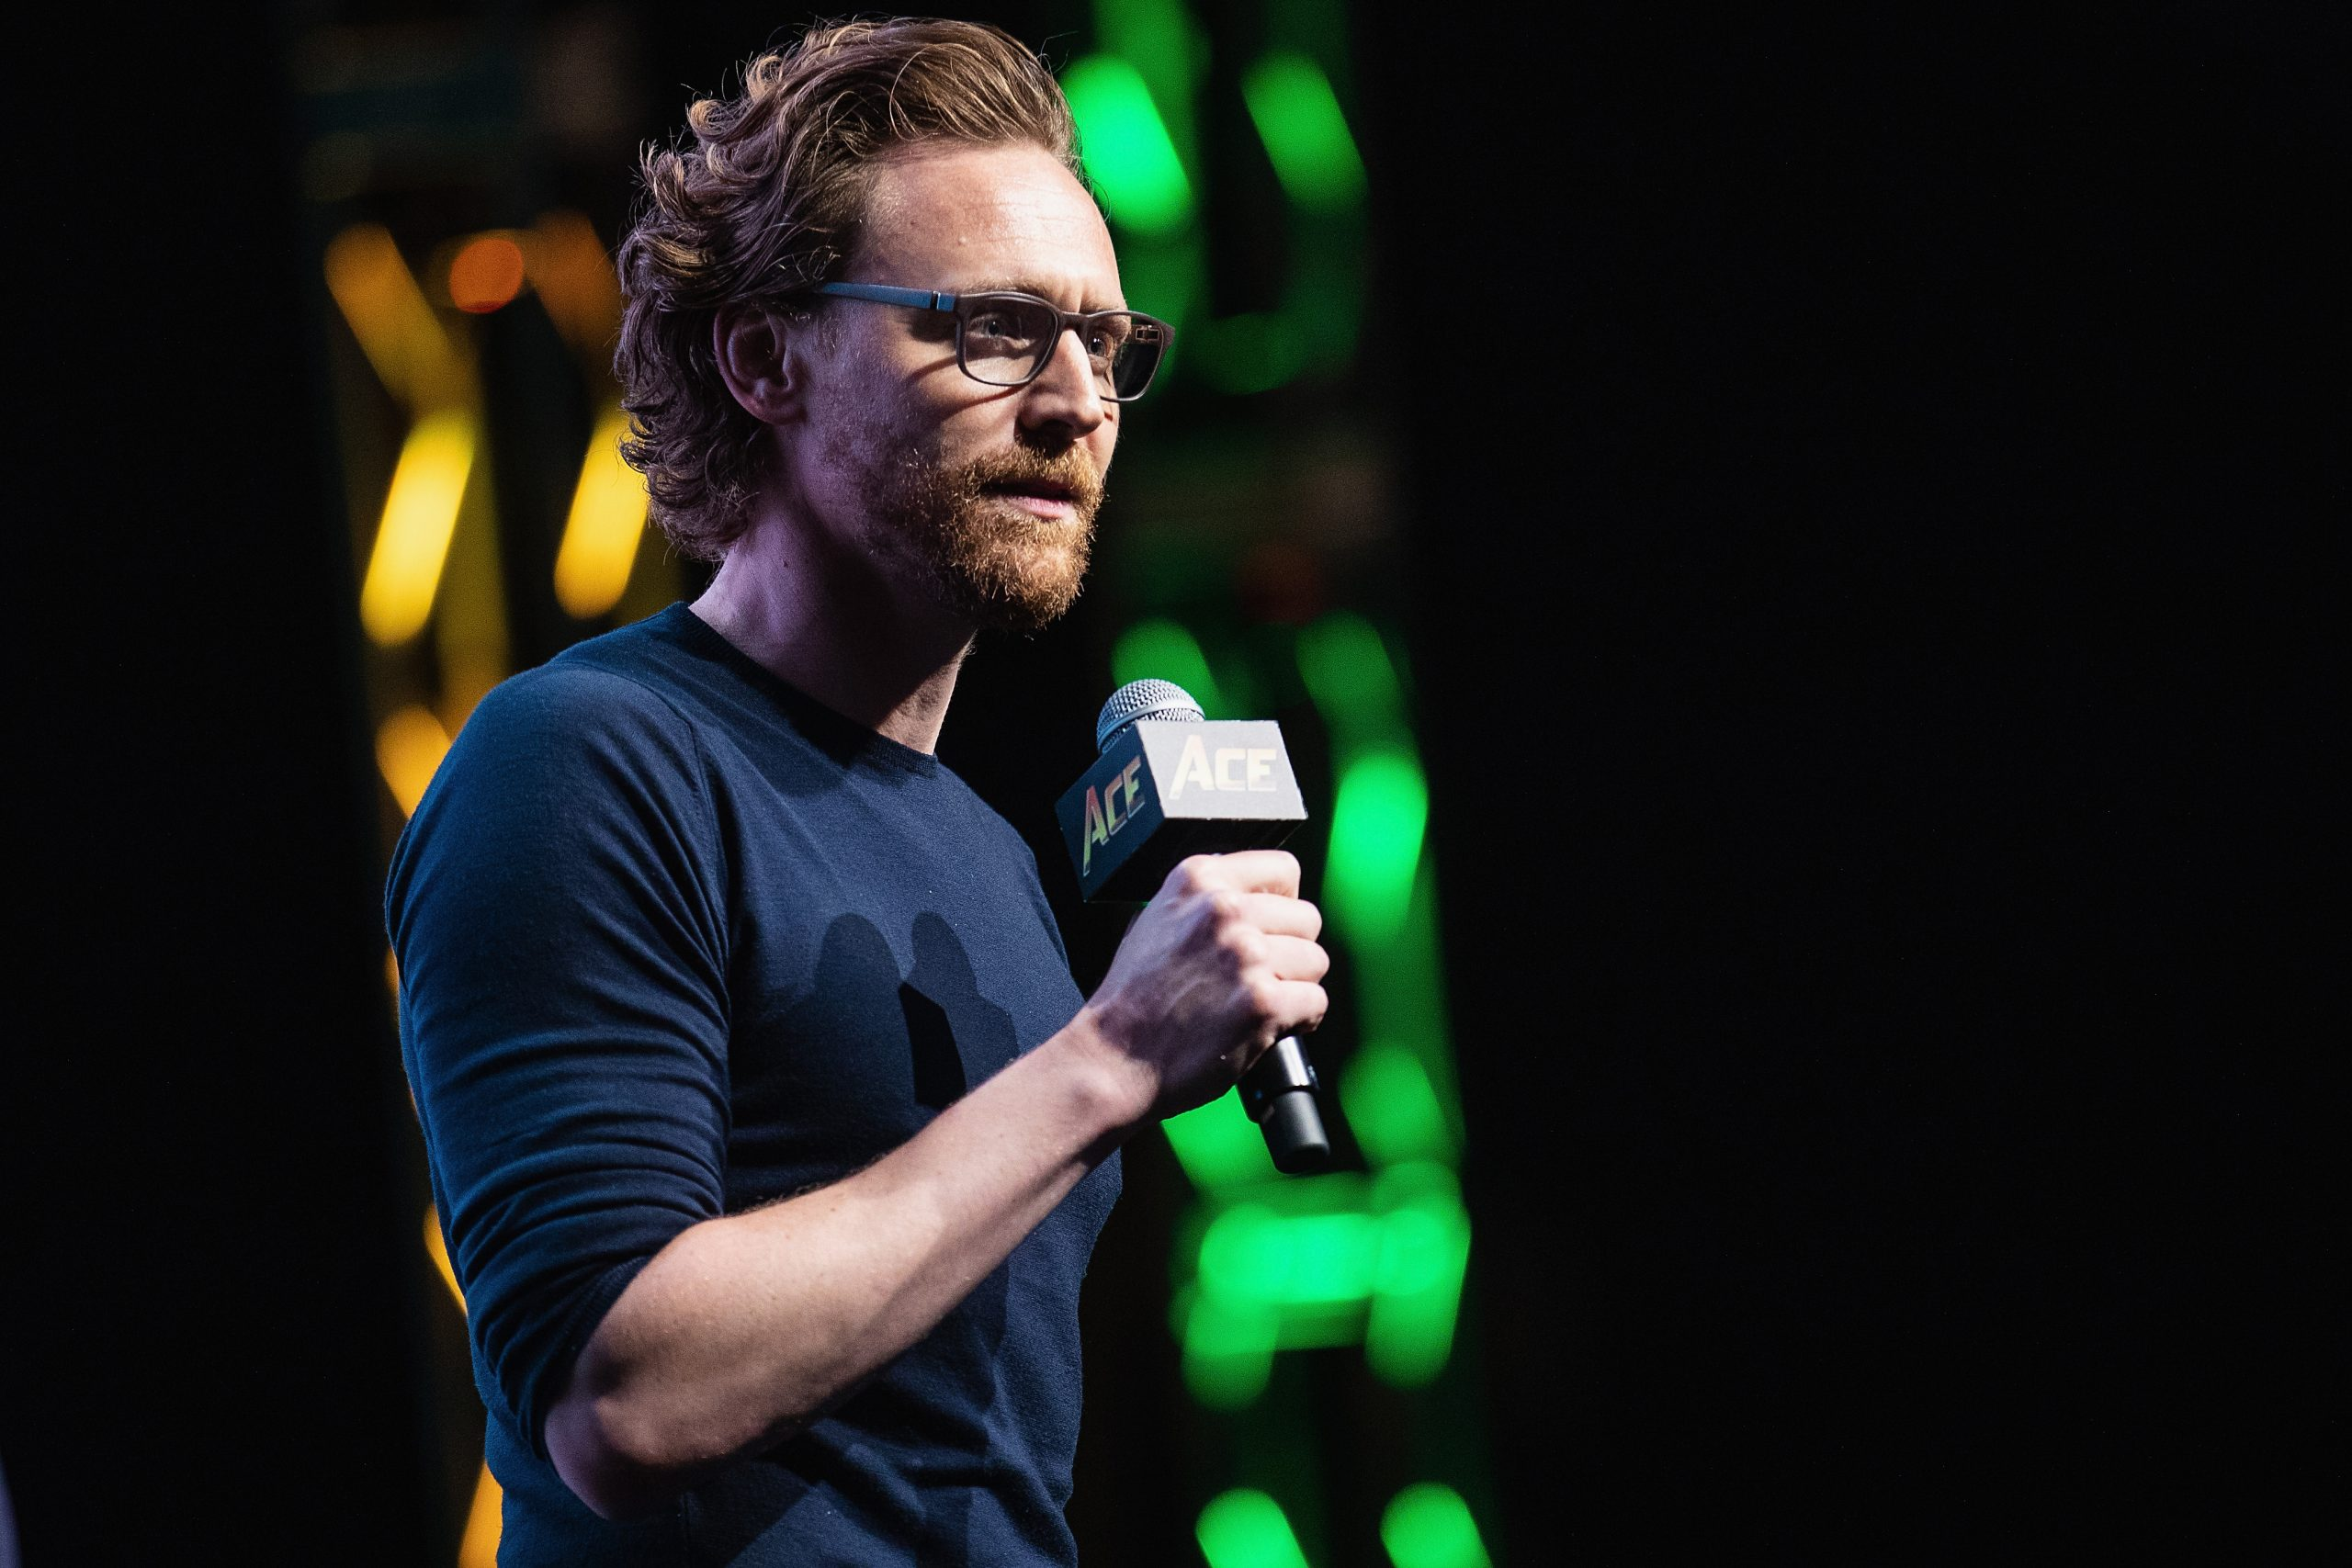 Tom Hiddleston speaks on stage about life as Loki in the Marvel Universe